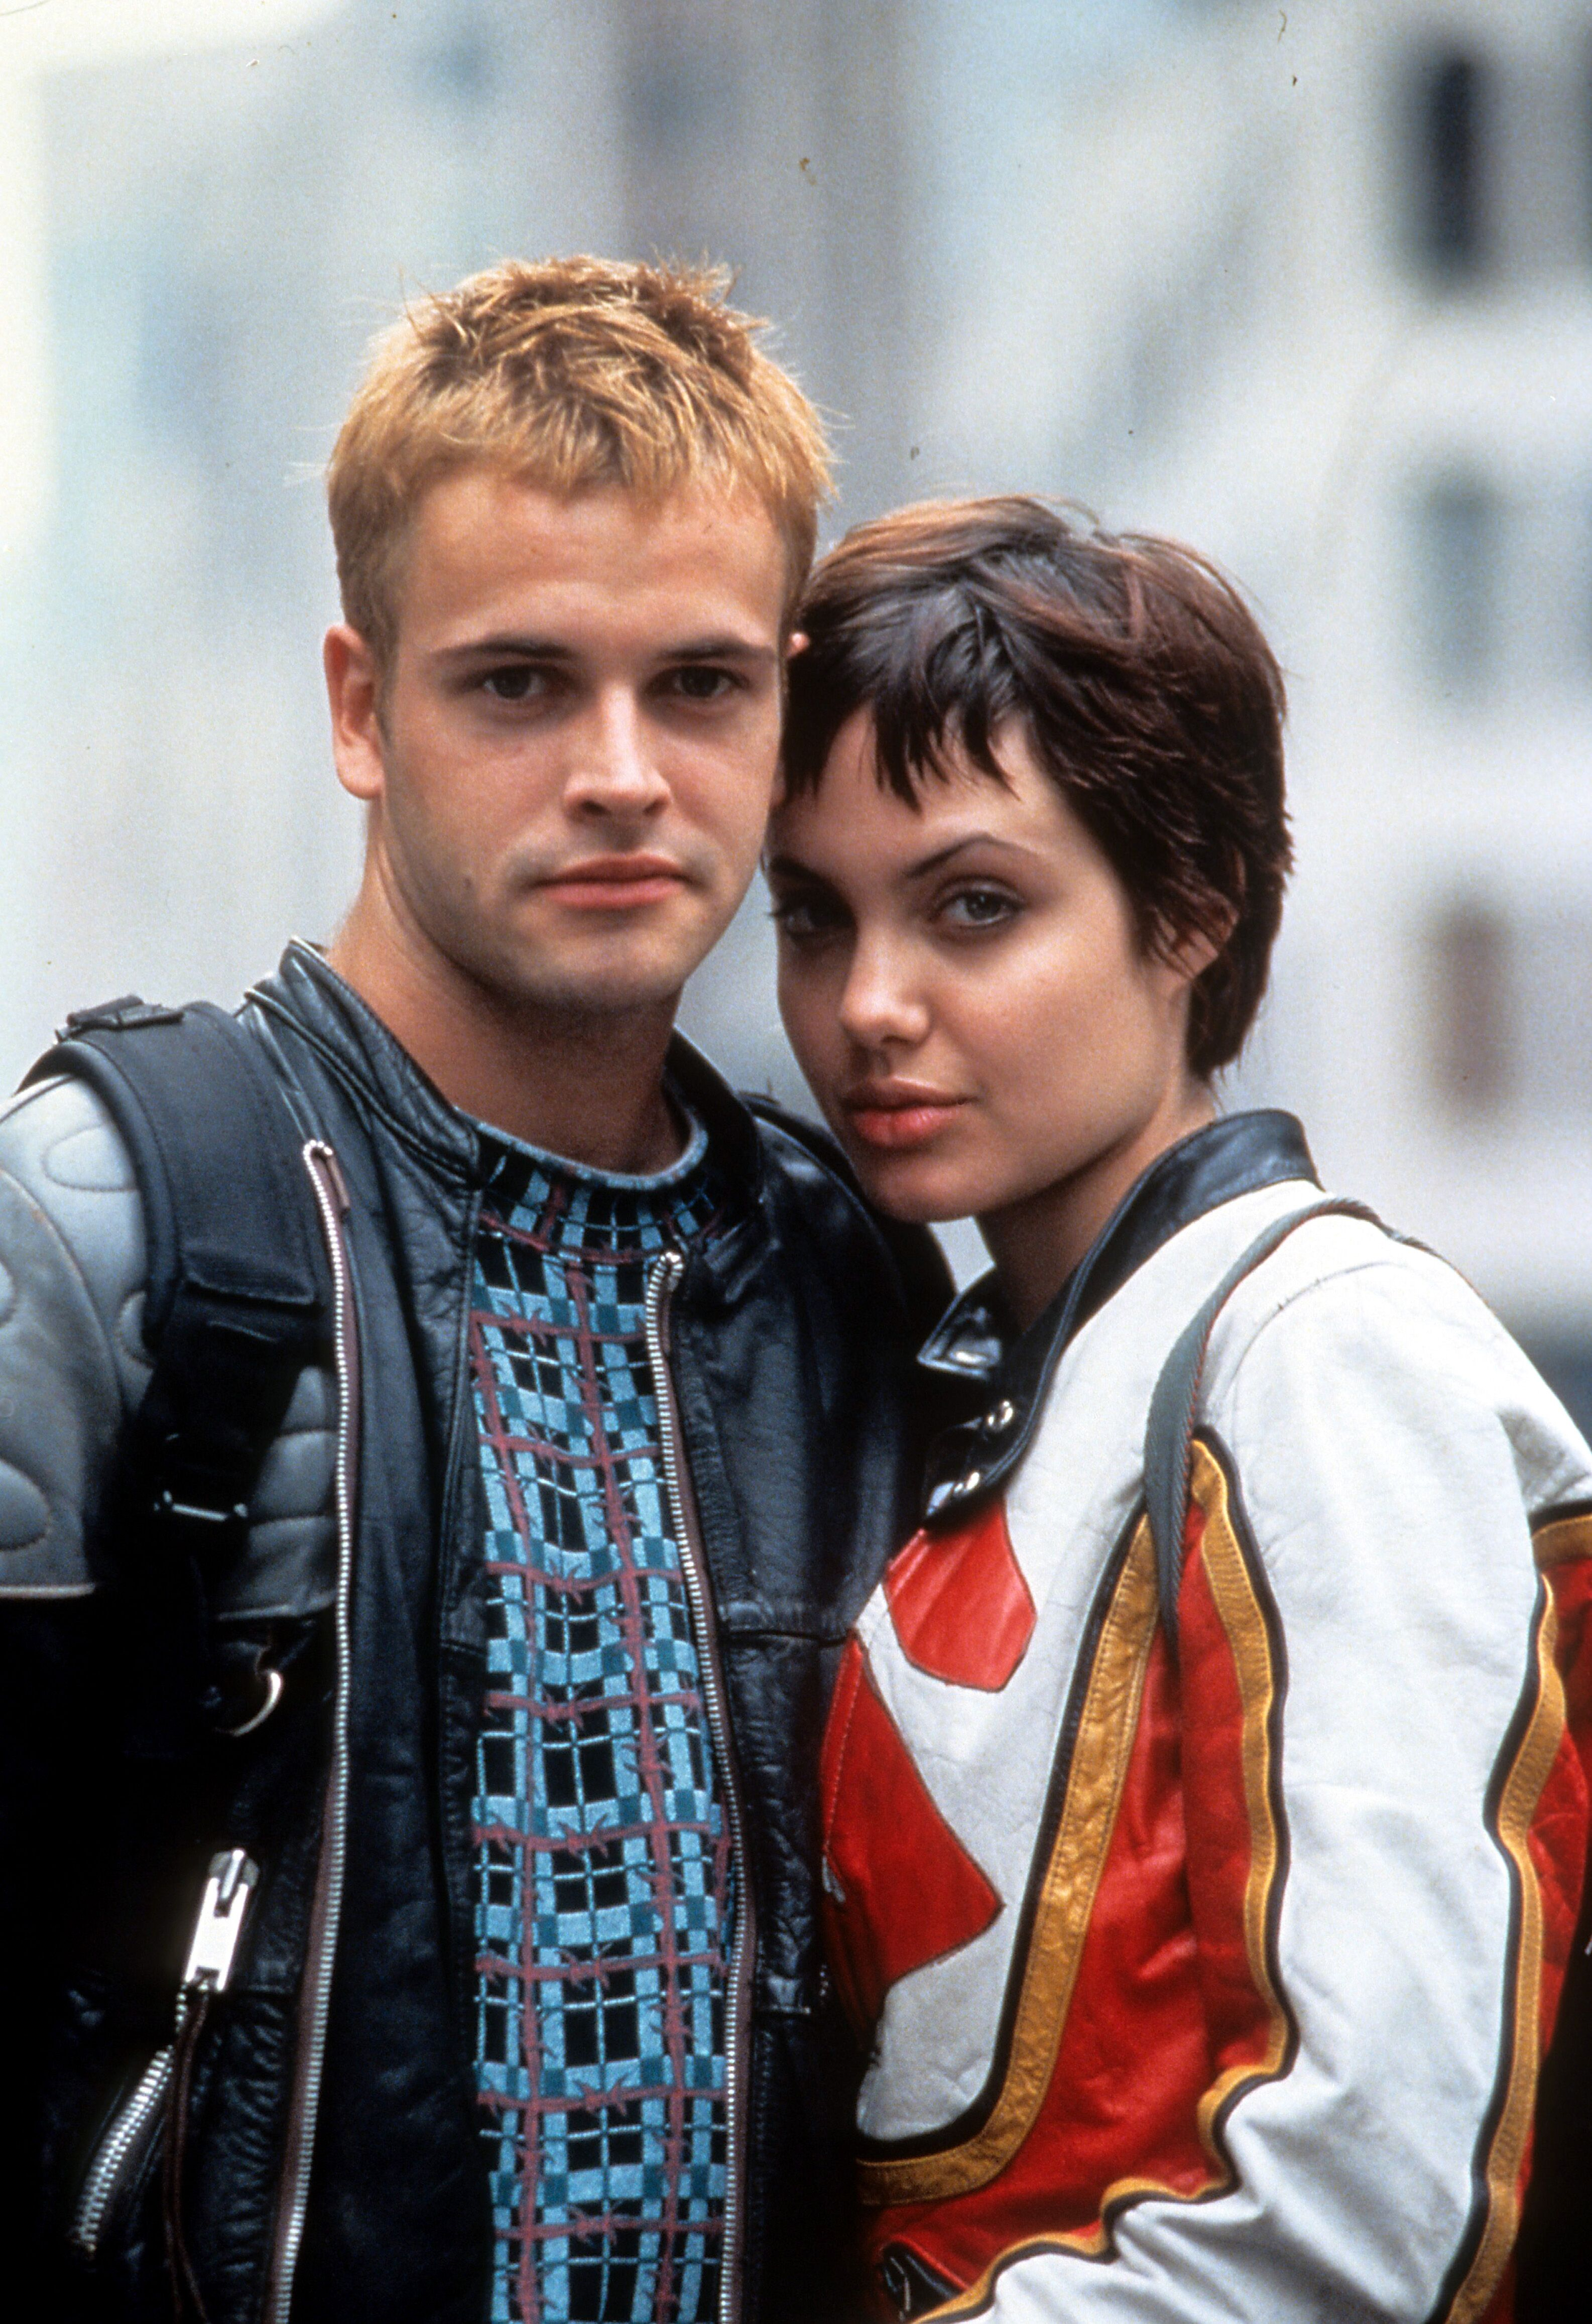 Jonny Lee Miller and Angelina Jolie in a scene from the movie 'Hackers', 1995. | Photo : Getty Images